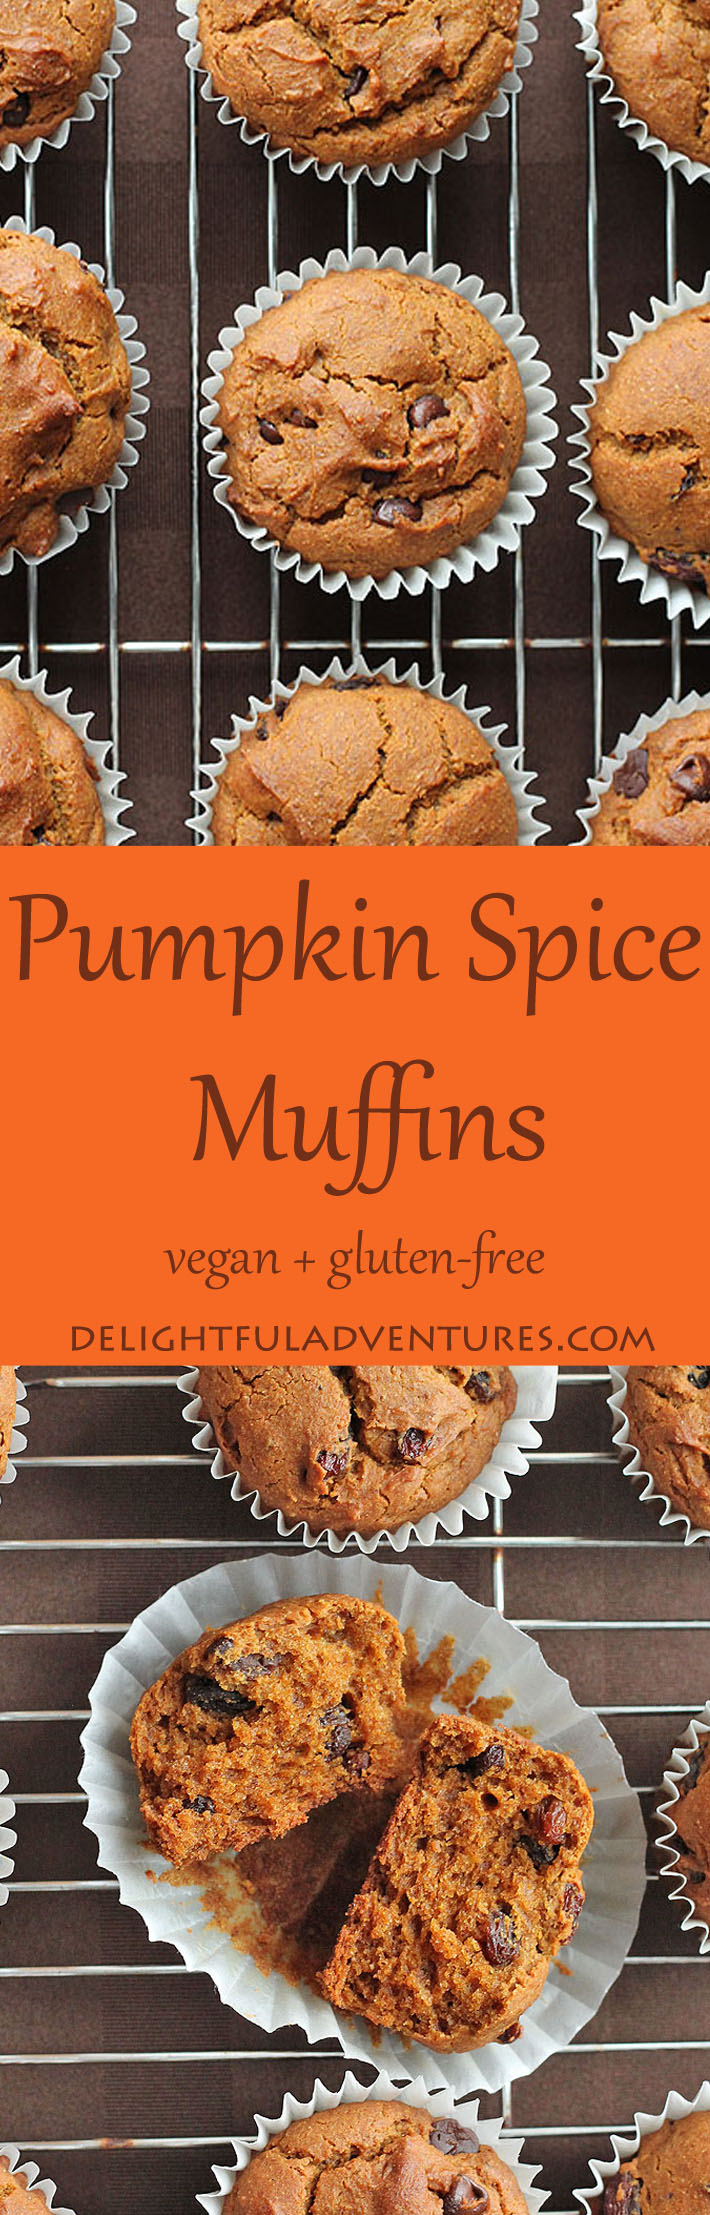 Vegan gluten free pumpkin spice muffins that are so easy to make and so delicious, you'll want to make them year-round—not just during the fall.